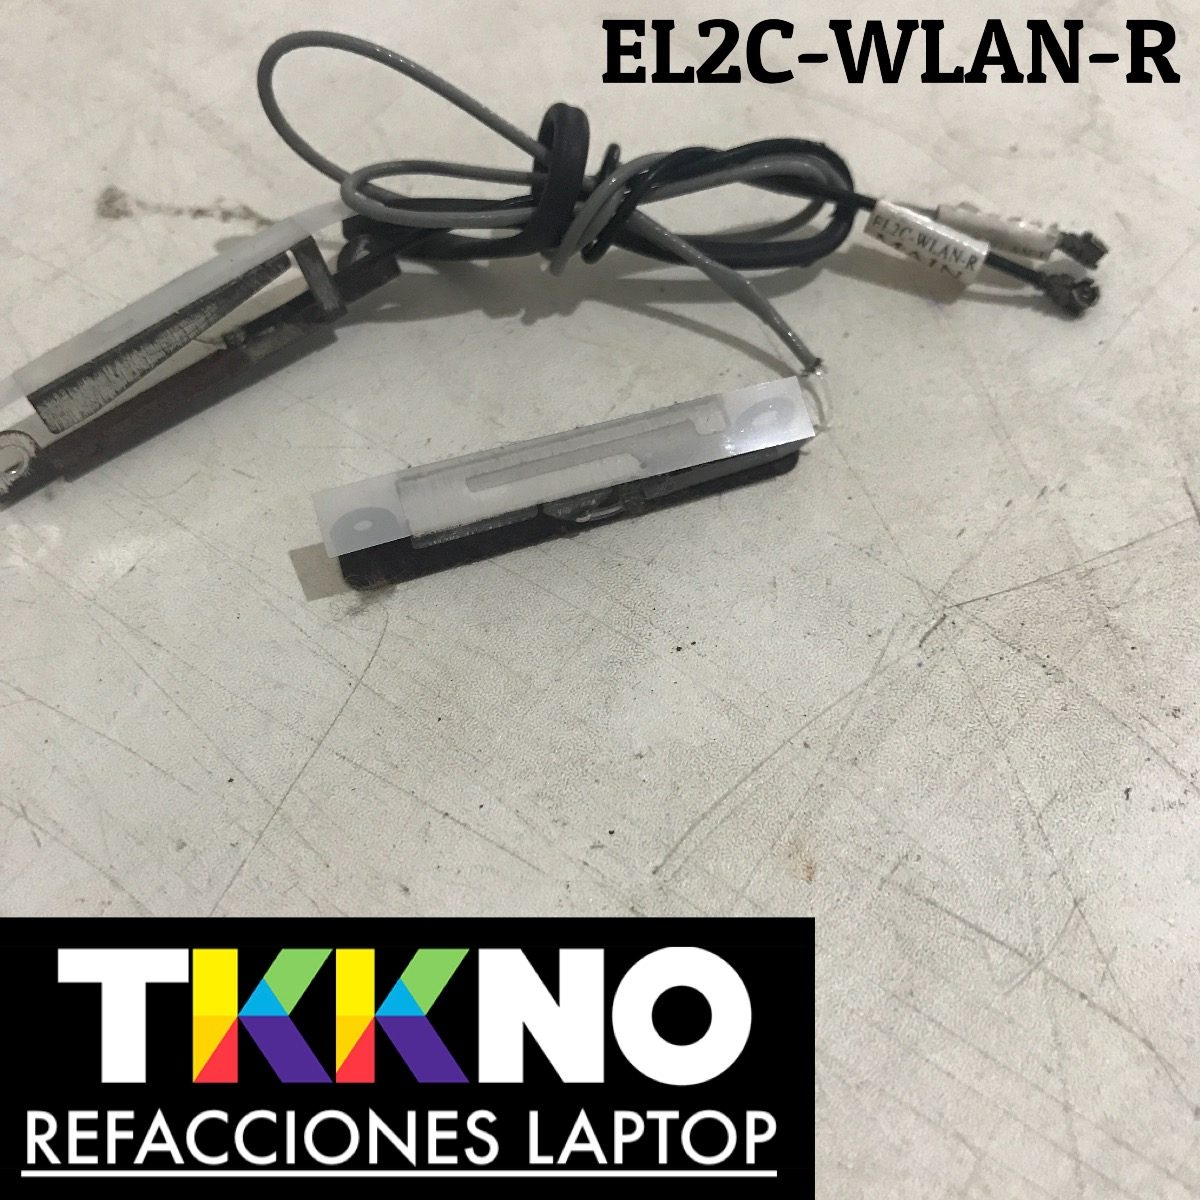 Cable Antena Wifi Gateway Zx4300 M3700 P/n: El2c-wlan-r - $ 59 00